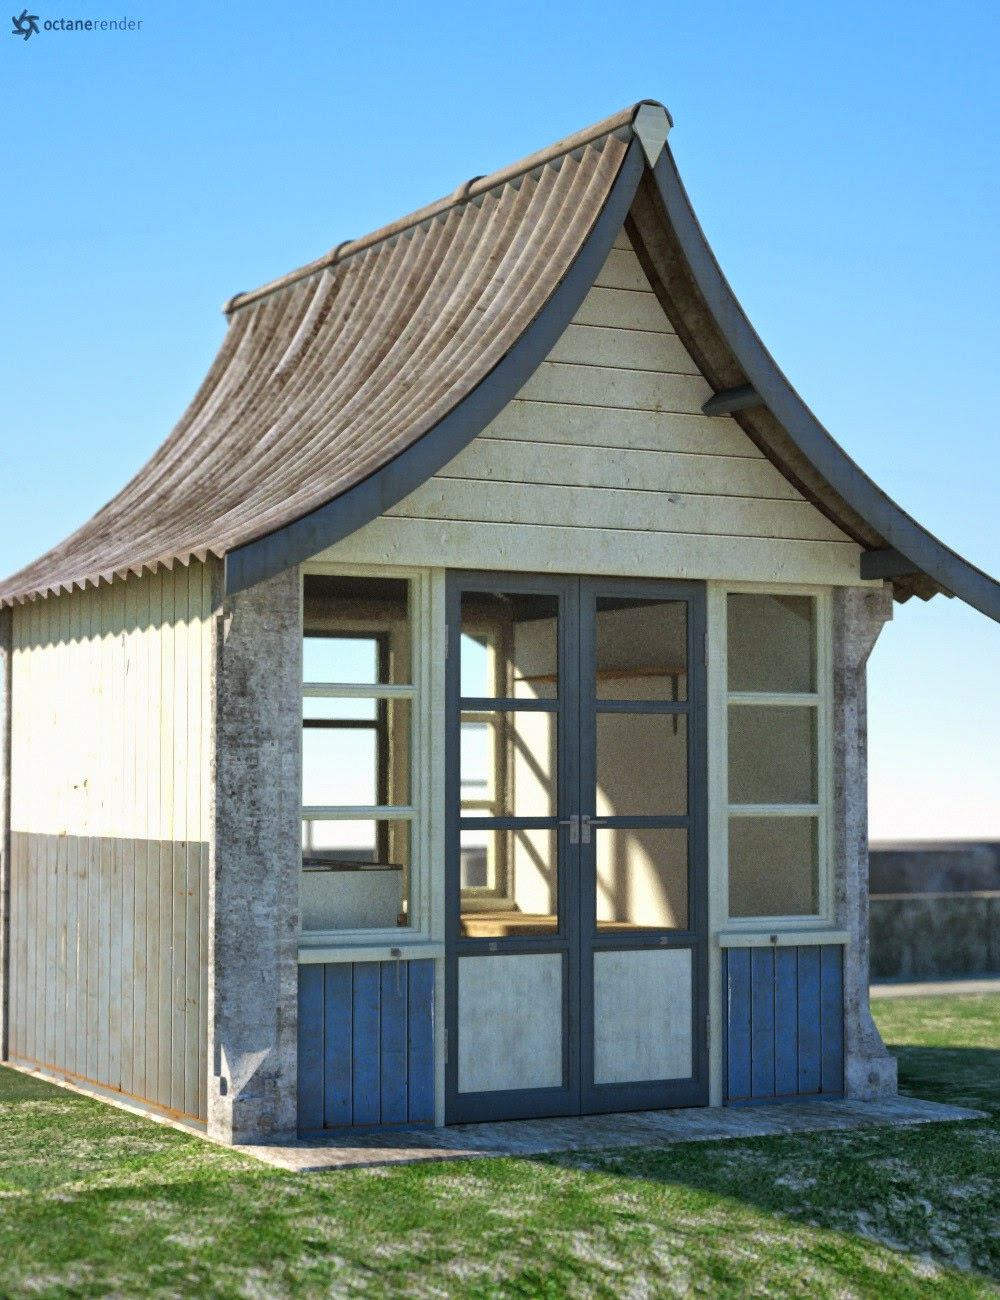 Download daz studio 3 for free daz 3d by the seaside for Model beach huts